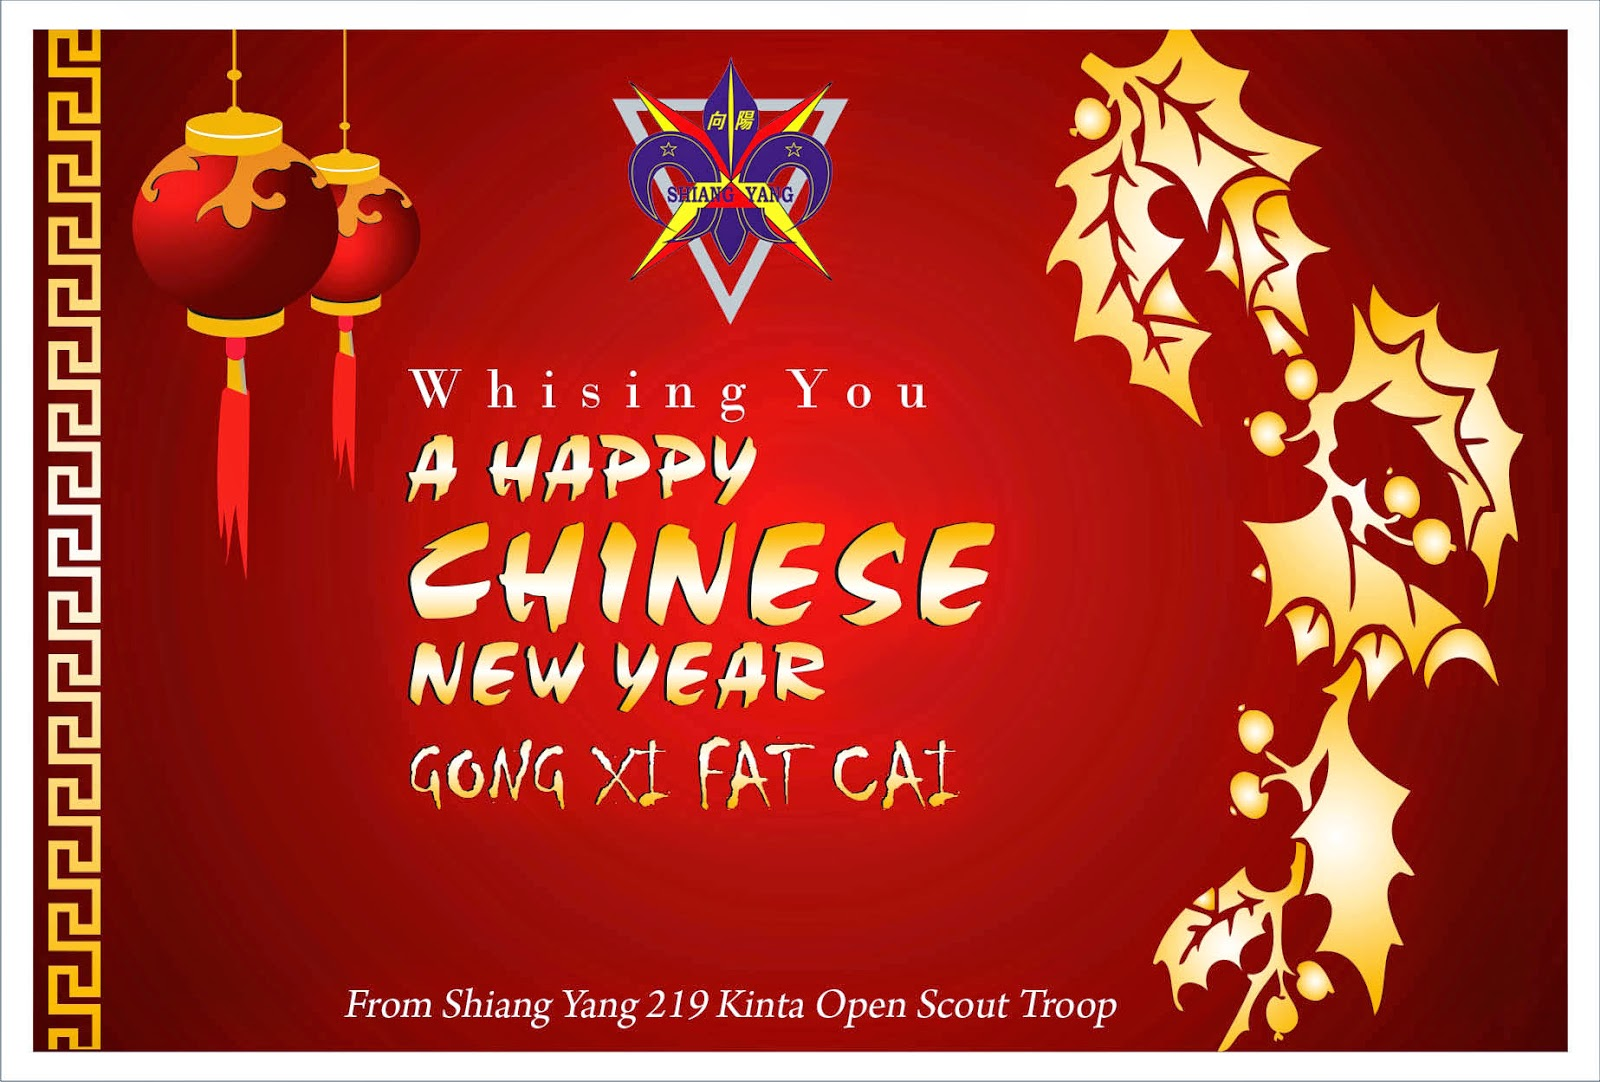 Chinese New Year Wishing For All Chinese New Year Wishes Quotes